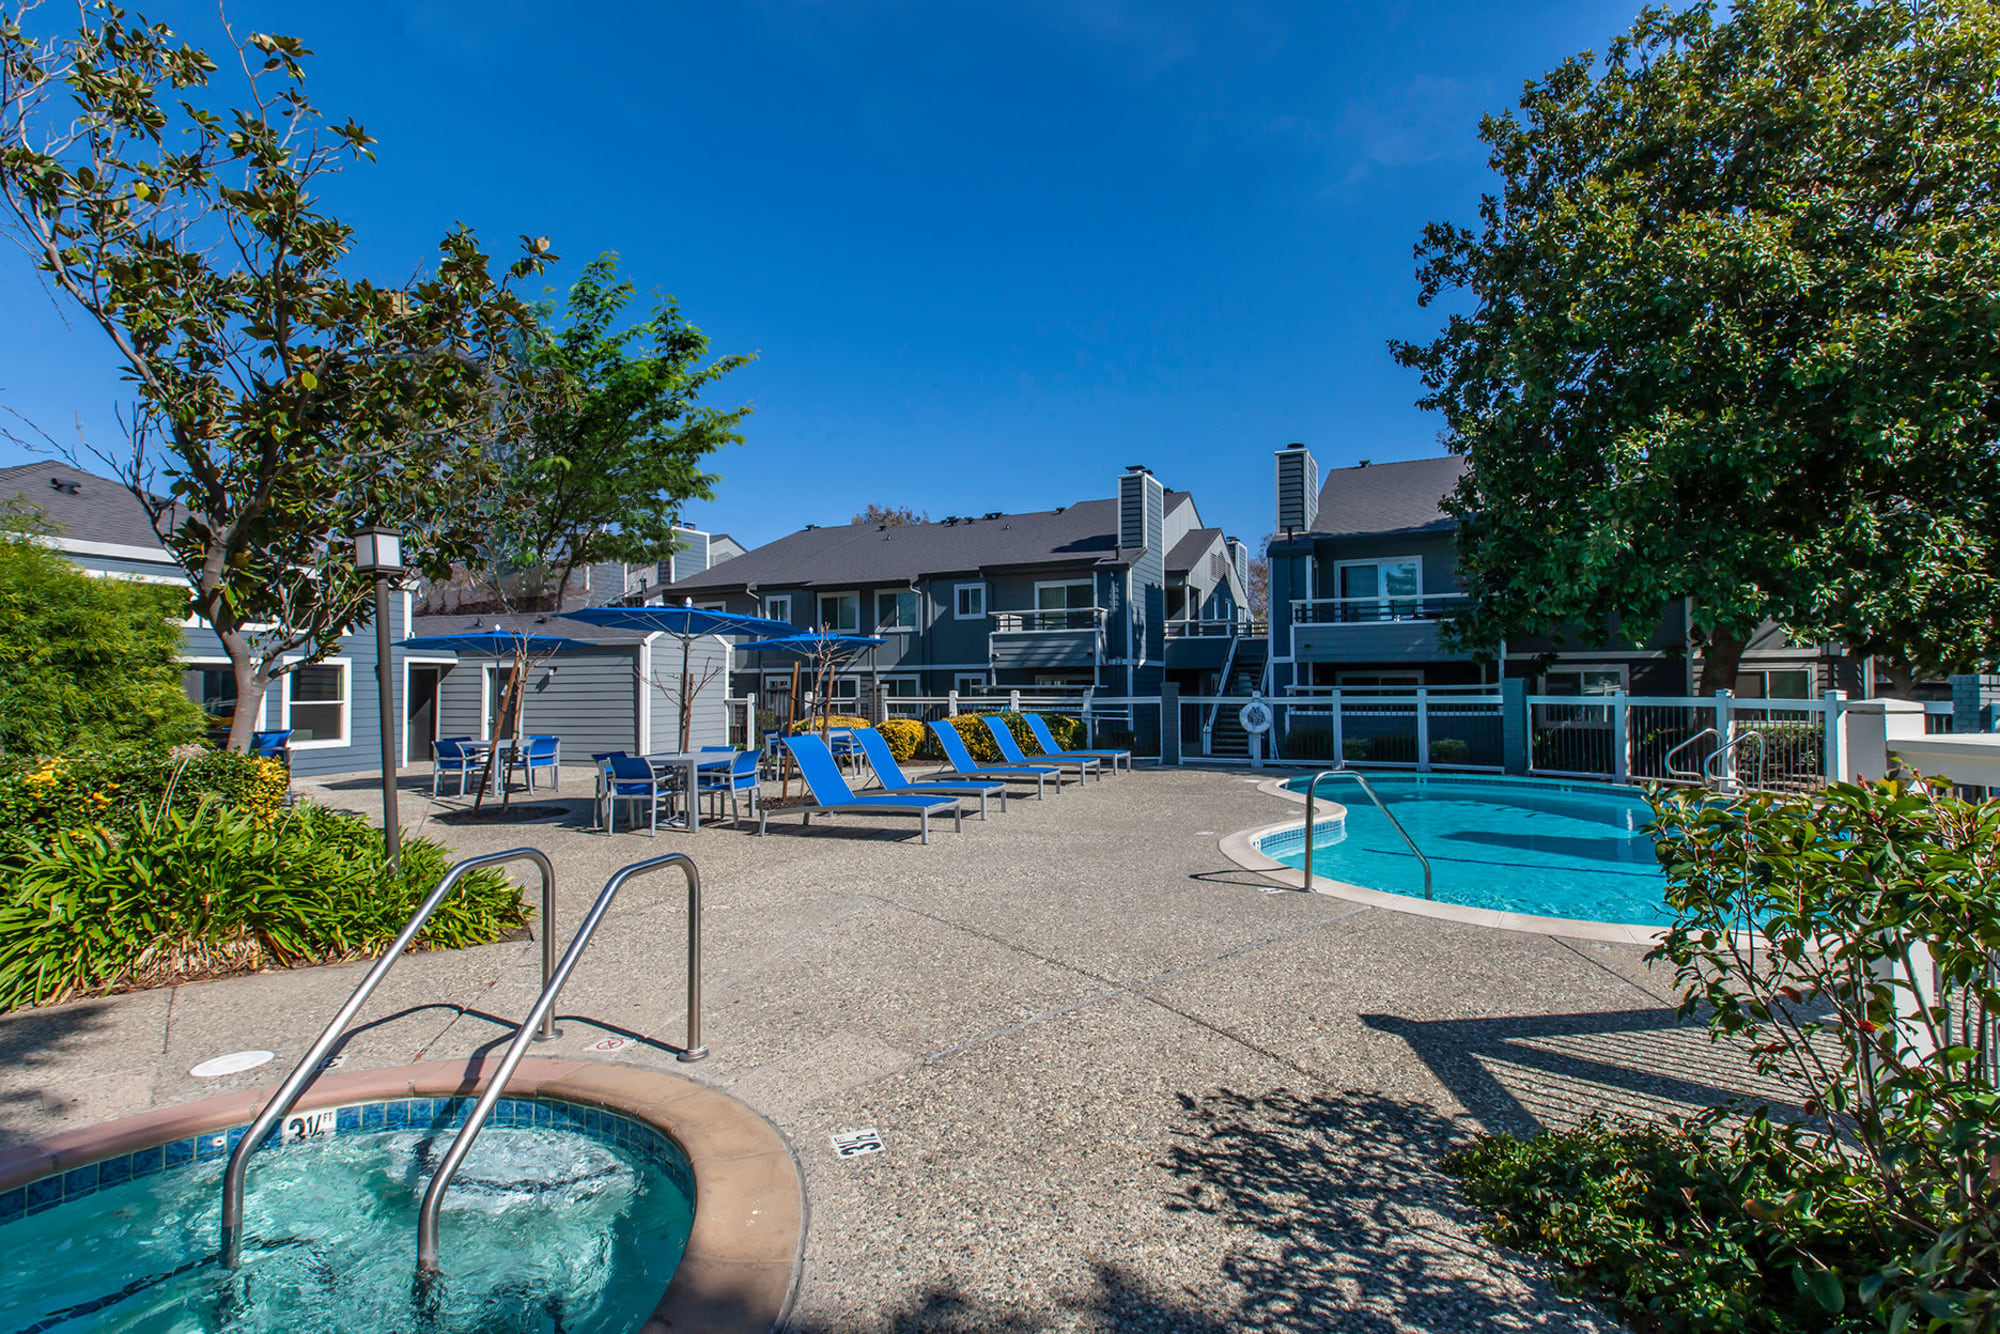 Pool and hot tub on a sunny day at Bennington Apartments in Fairfield, California